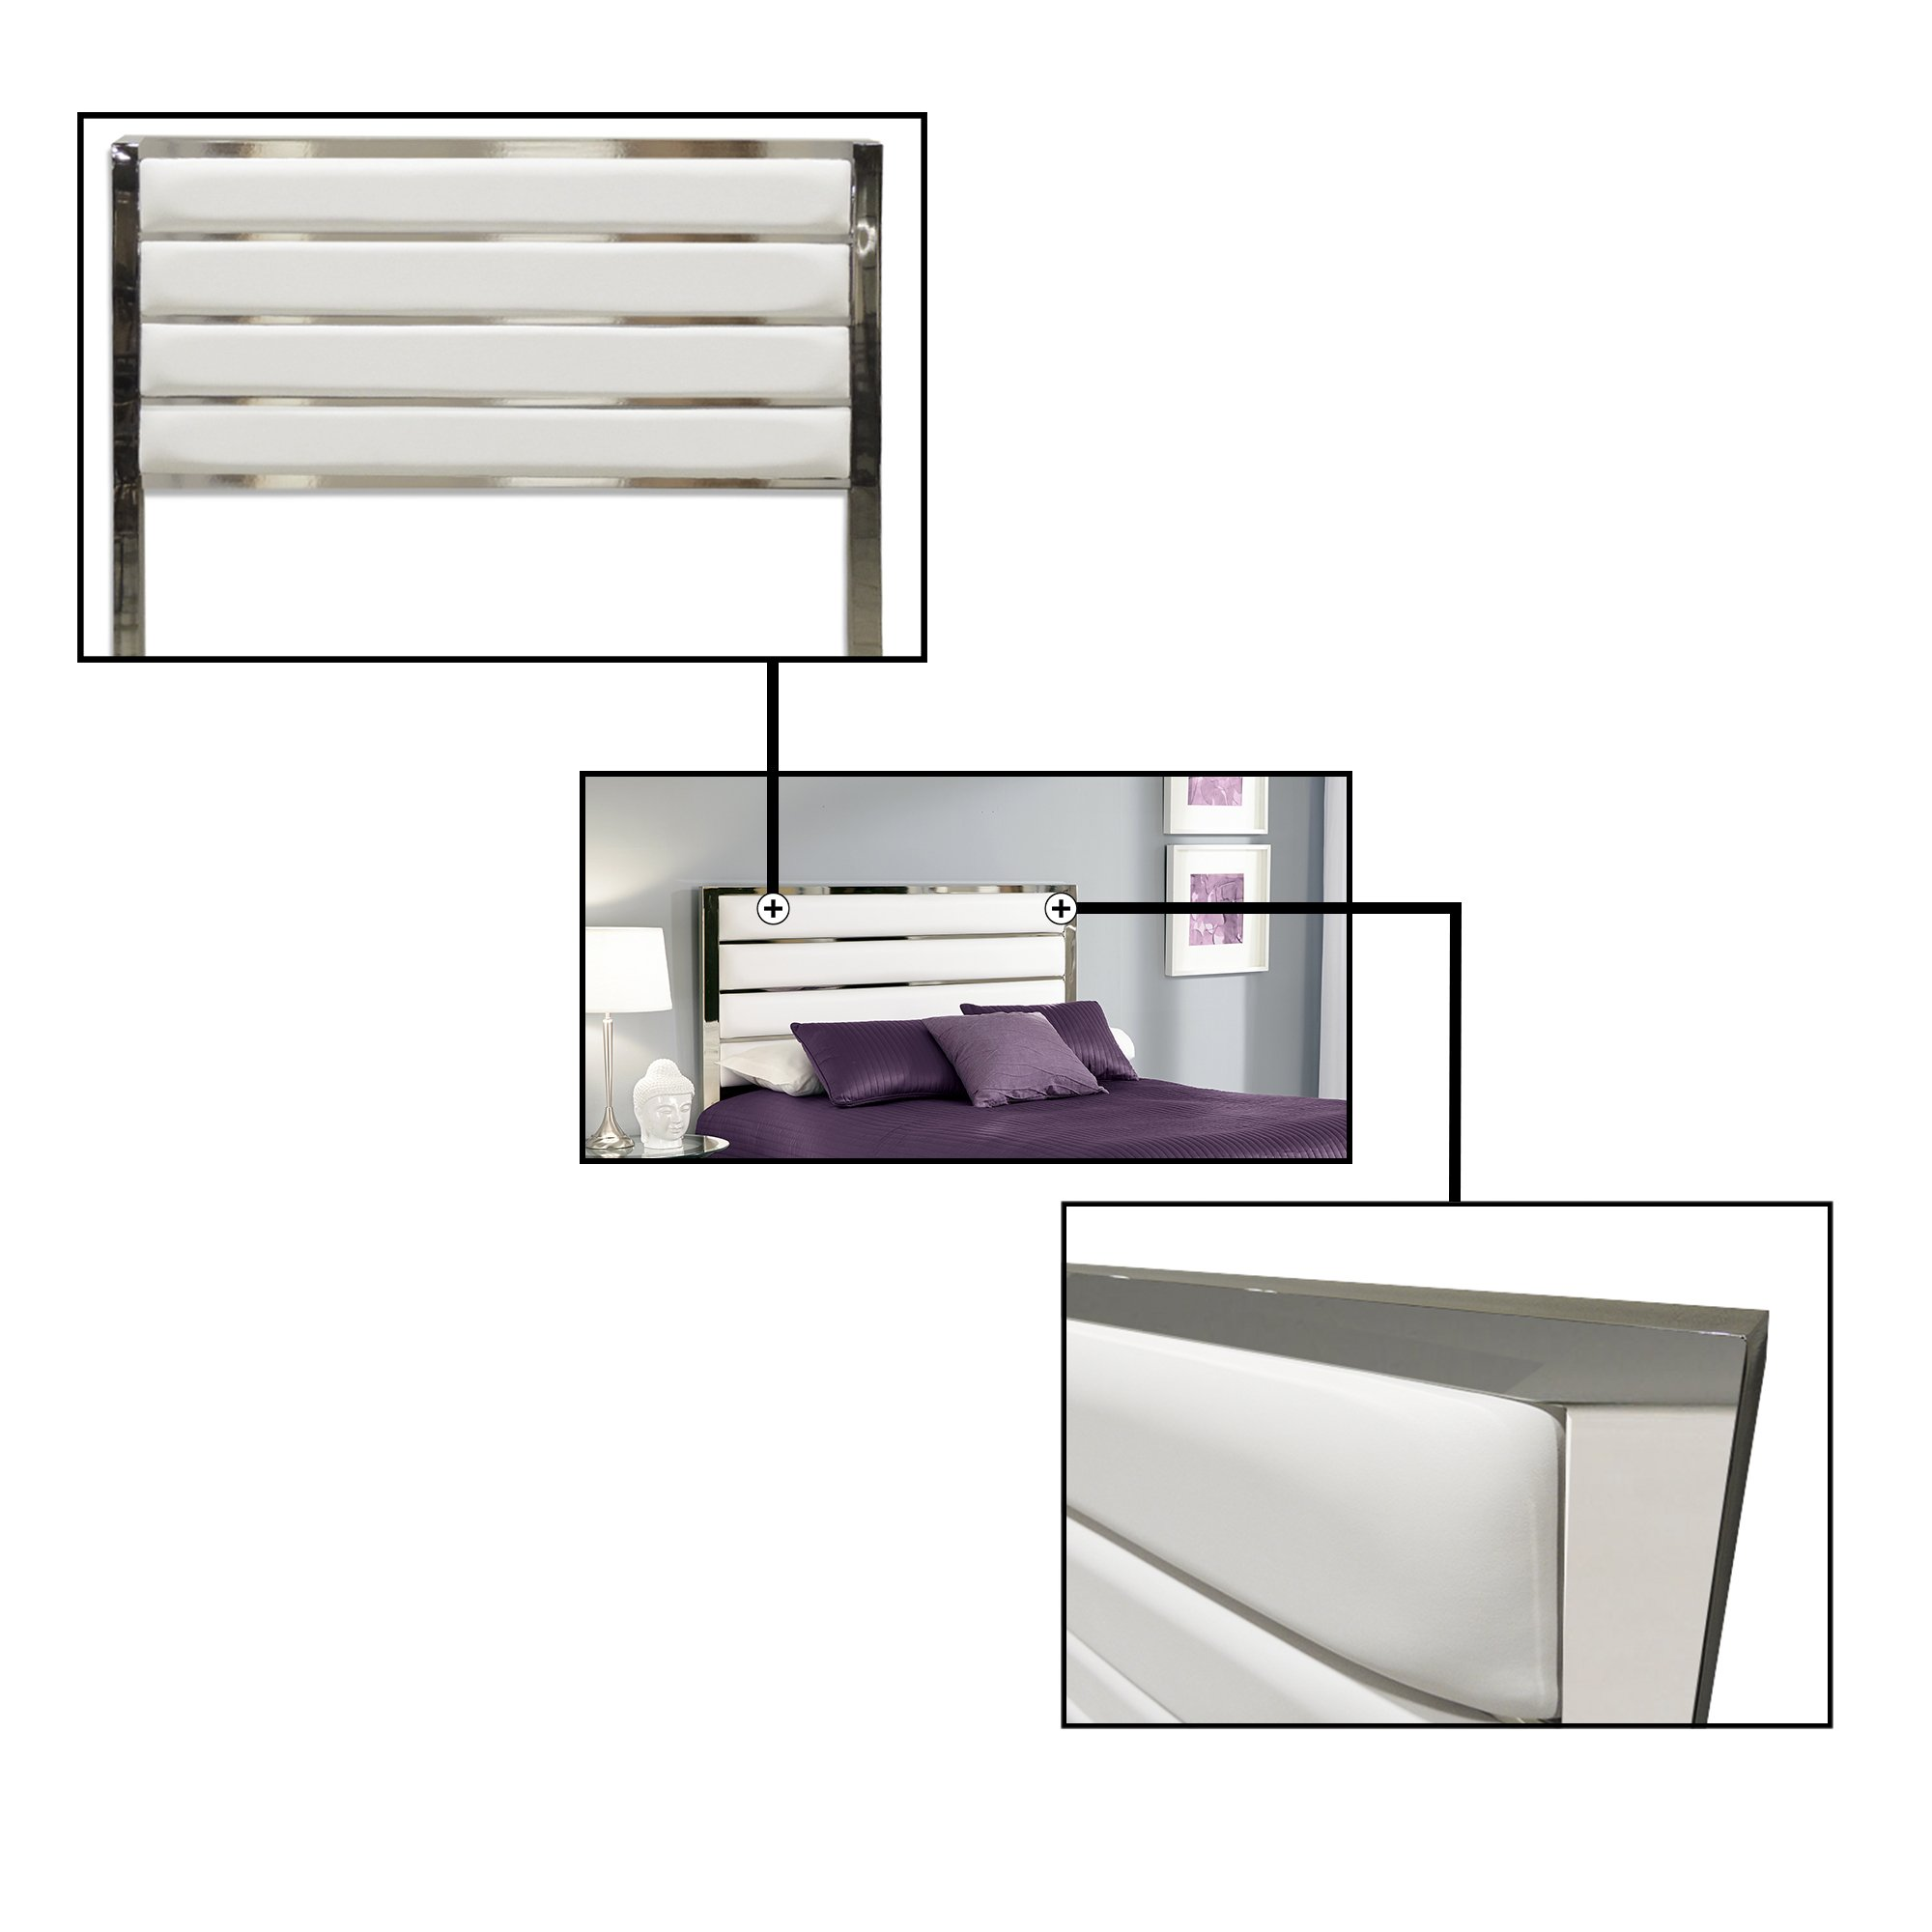 Fashion Bed Group B72526 Impulse Metal Headboard Panel with White Upholstery, Chrome Finish, King by Fashion Bed Group (Image #2)